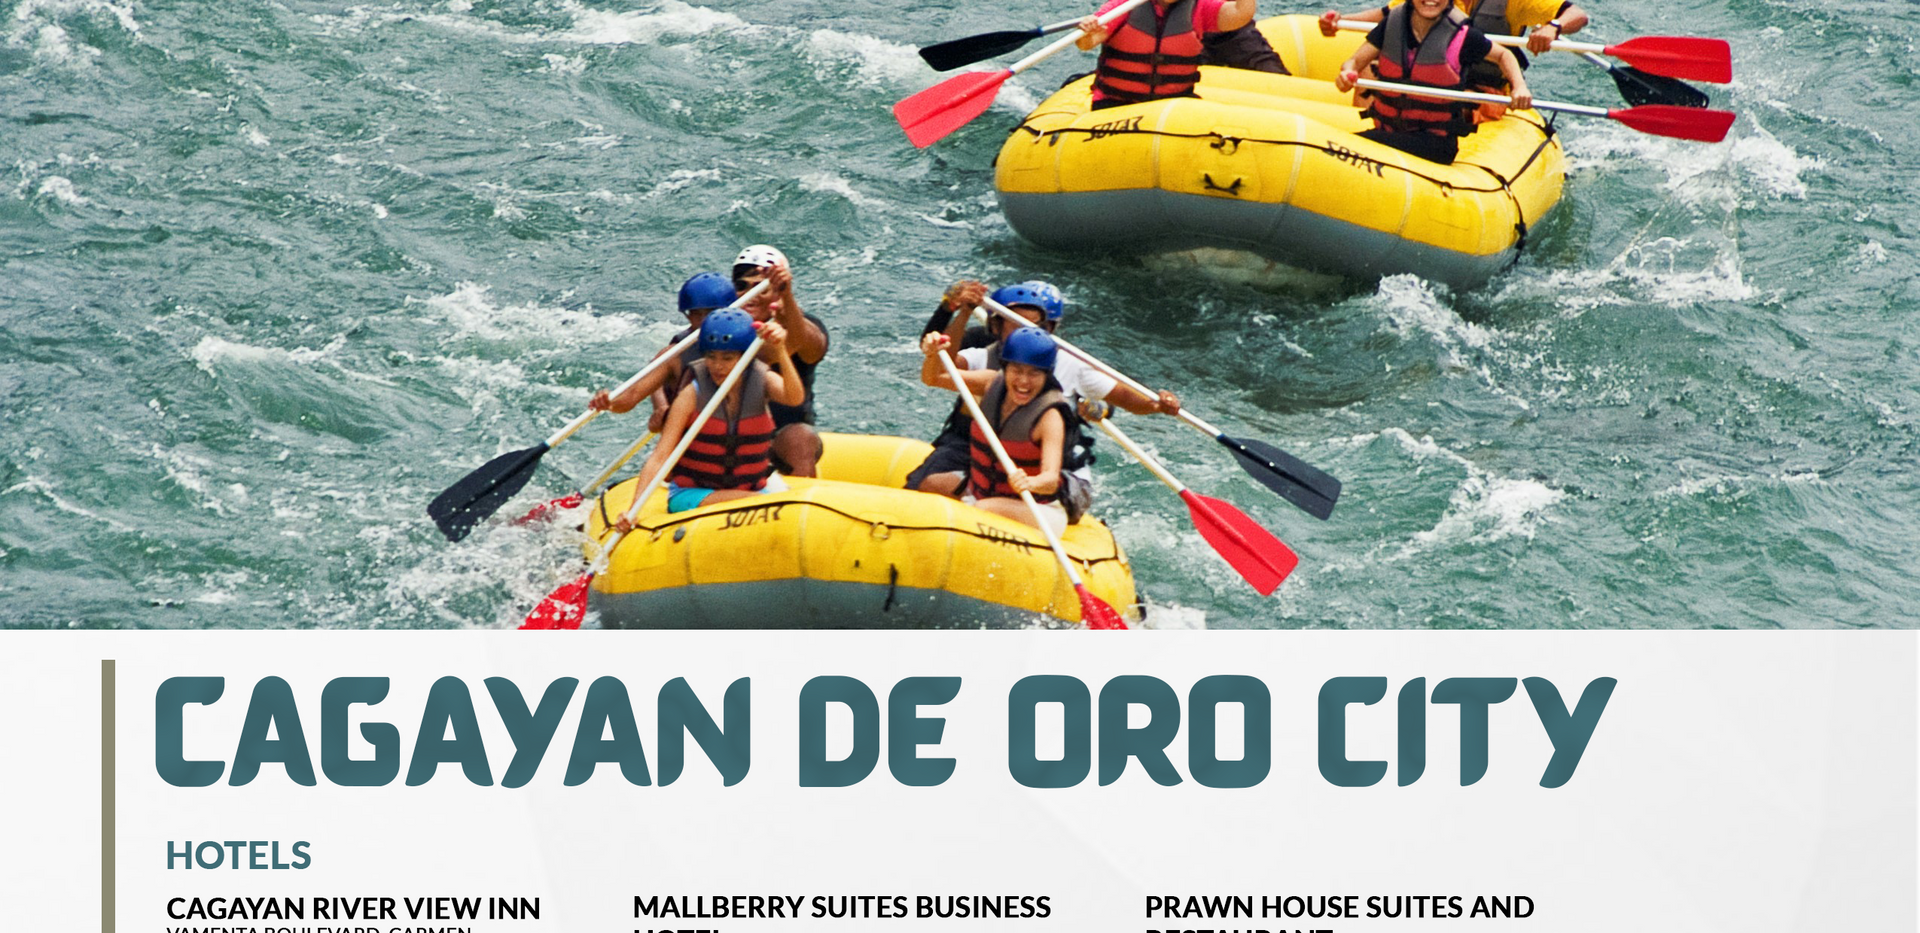 Cagayan de Oro Accred Poster 1.png